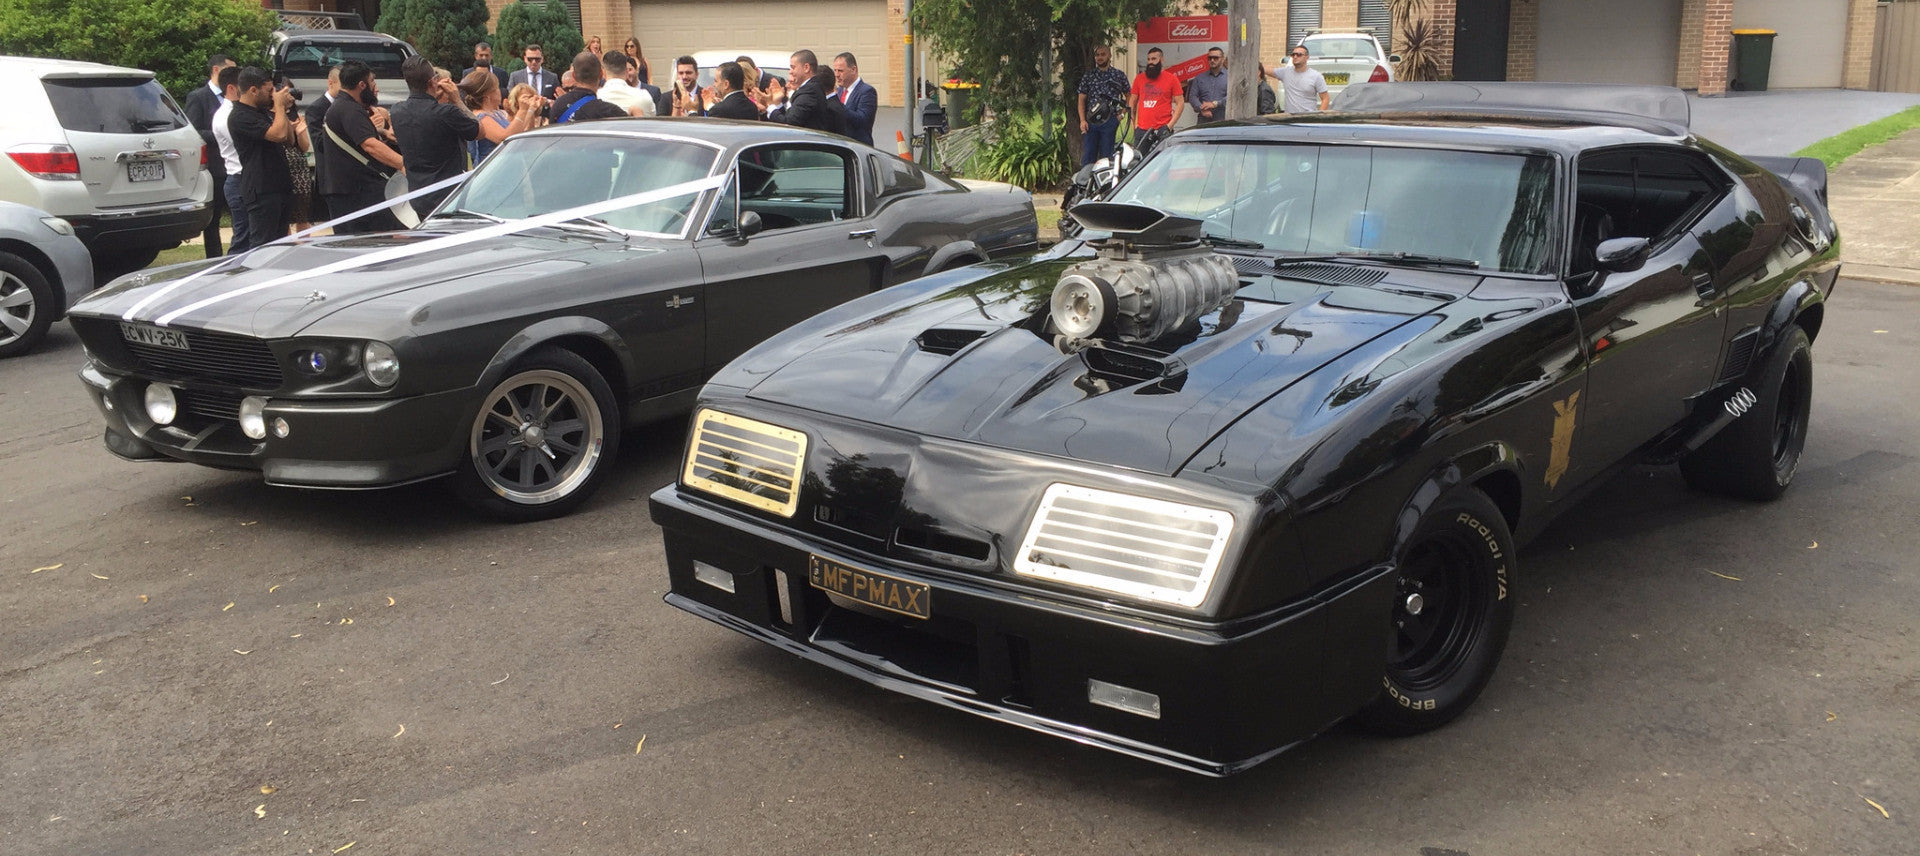 Ford Xb Gt Falcon Coupe Mad Max Interceptor For Hire Sydney Eleanor Hire